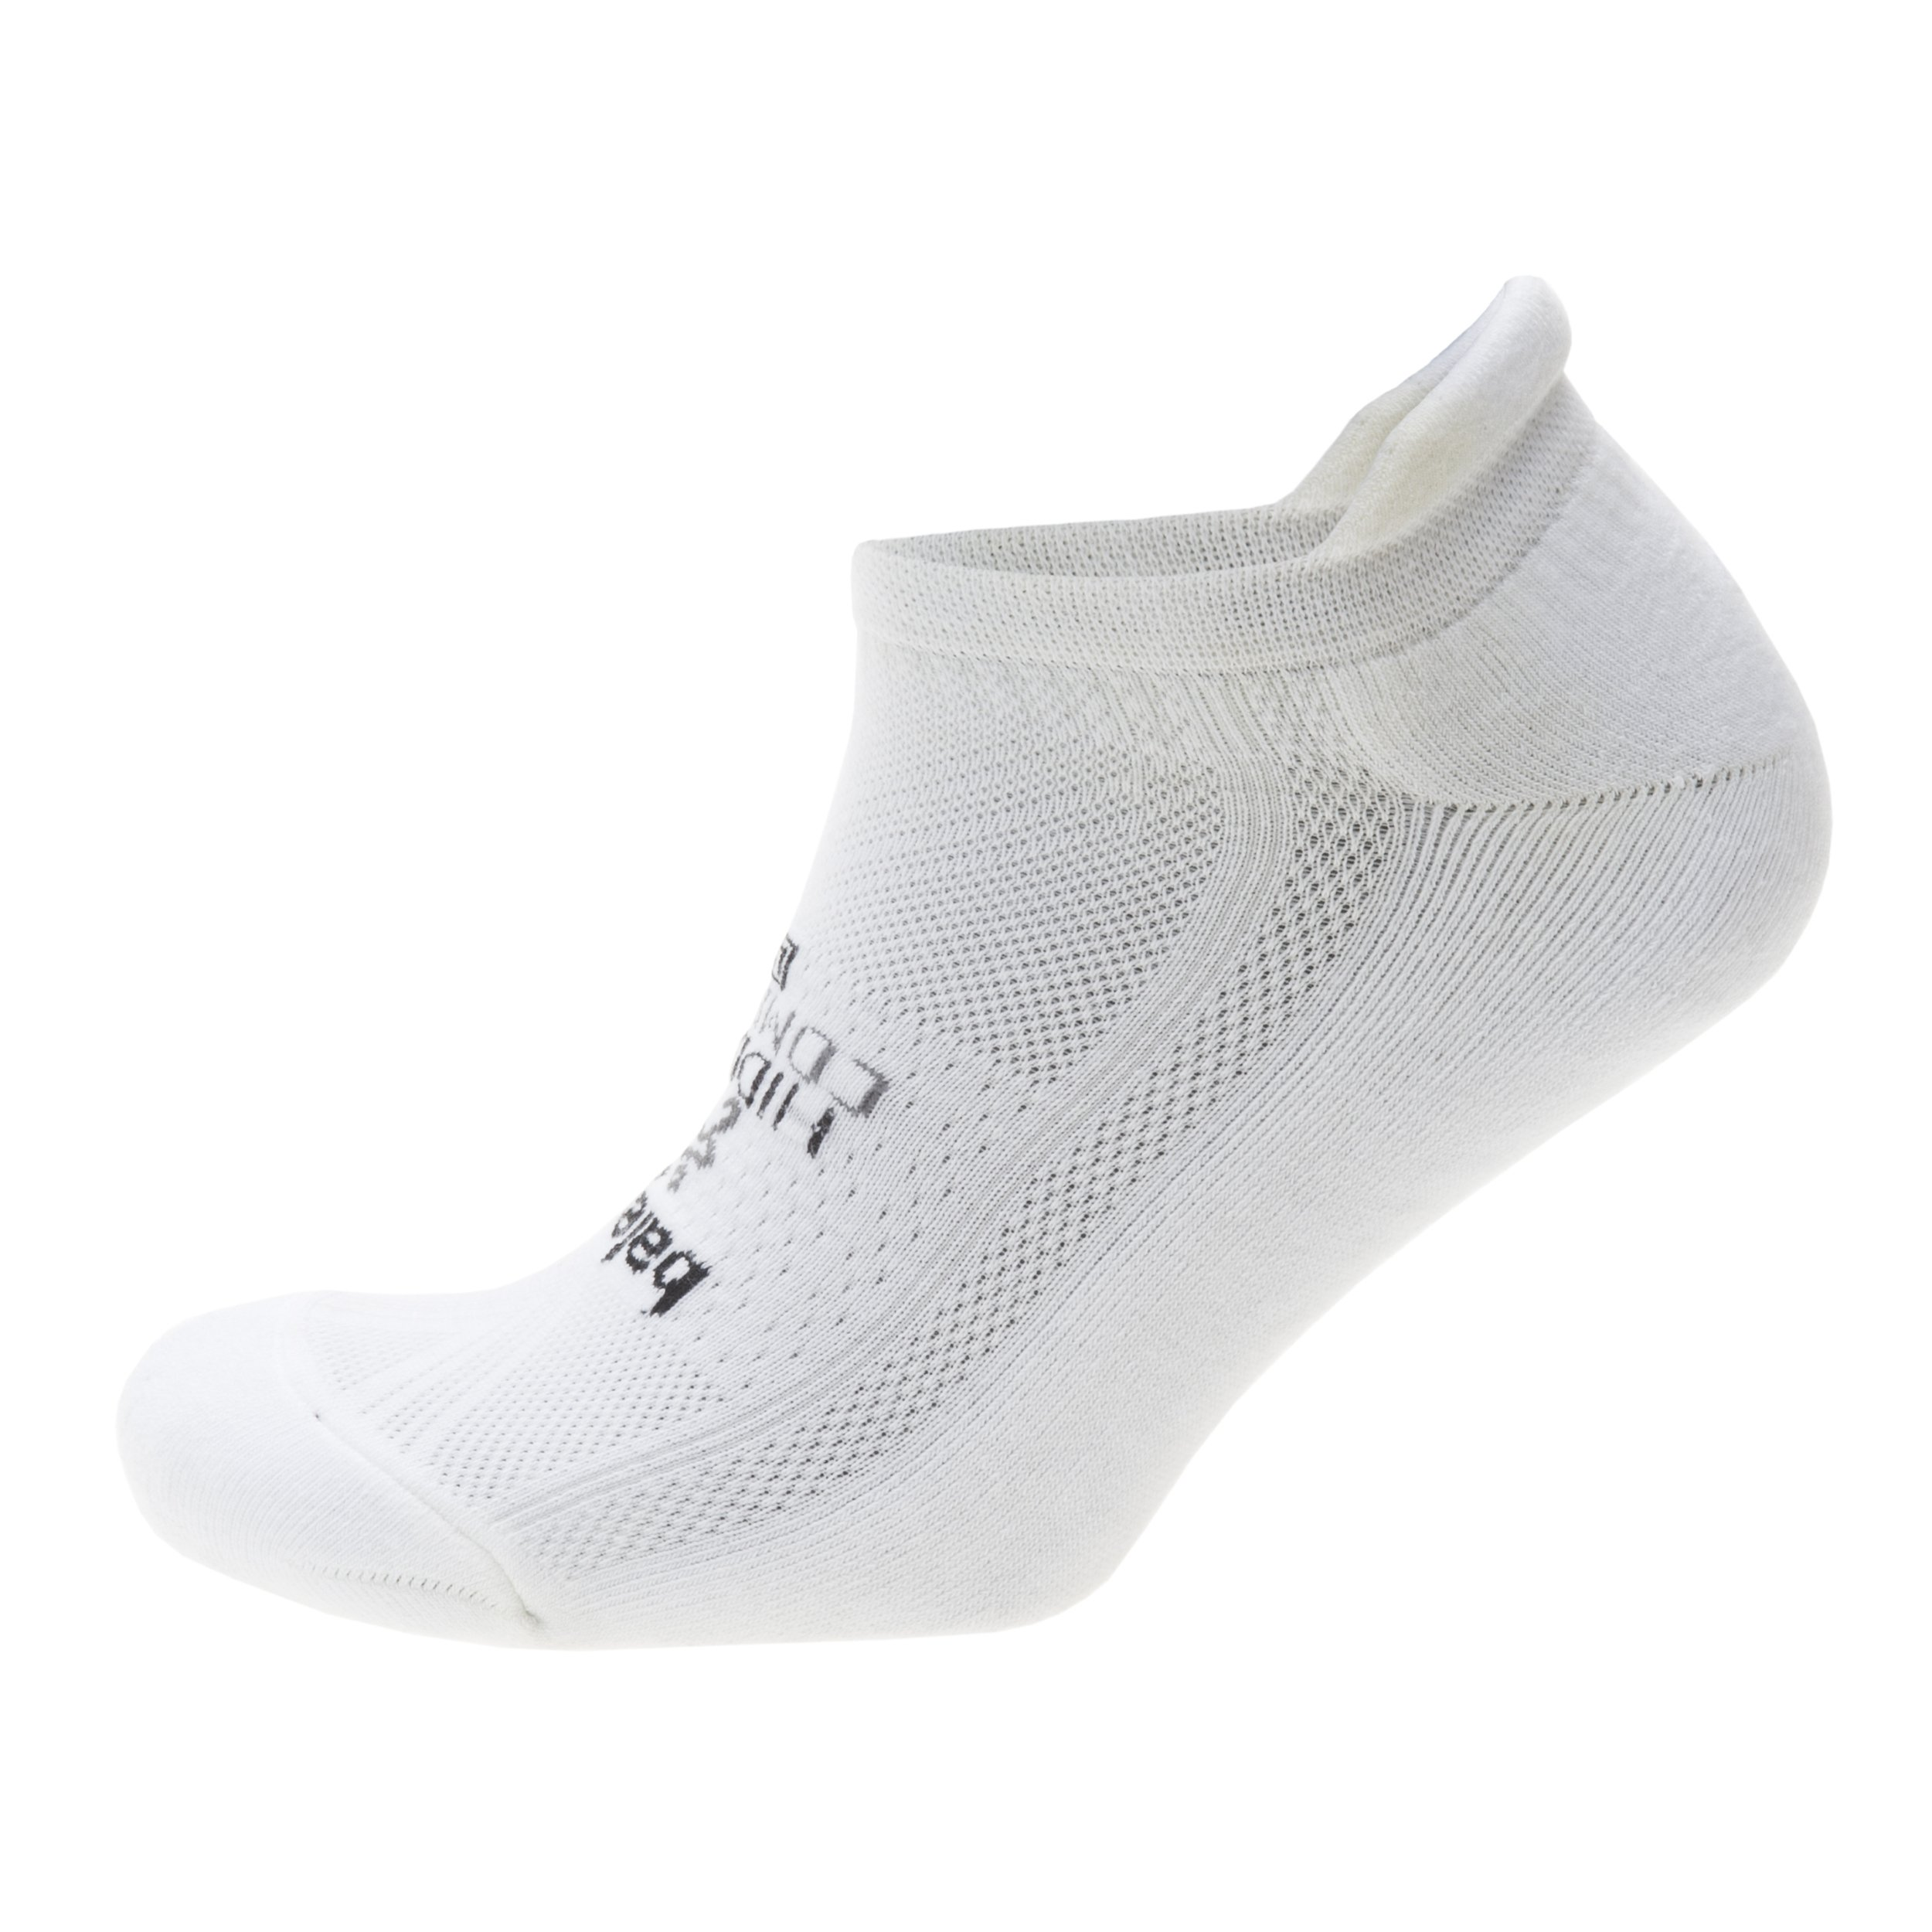 Balega Hidden Comfort No-Show Running Socks for Men and Women (1 Pair), White, Large